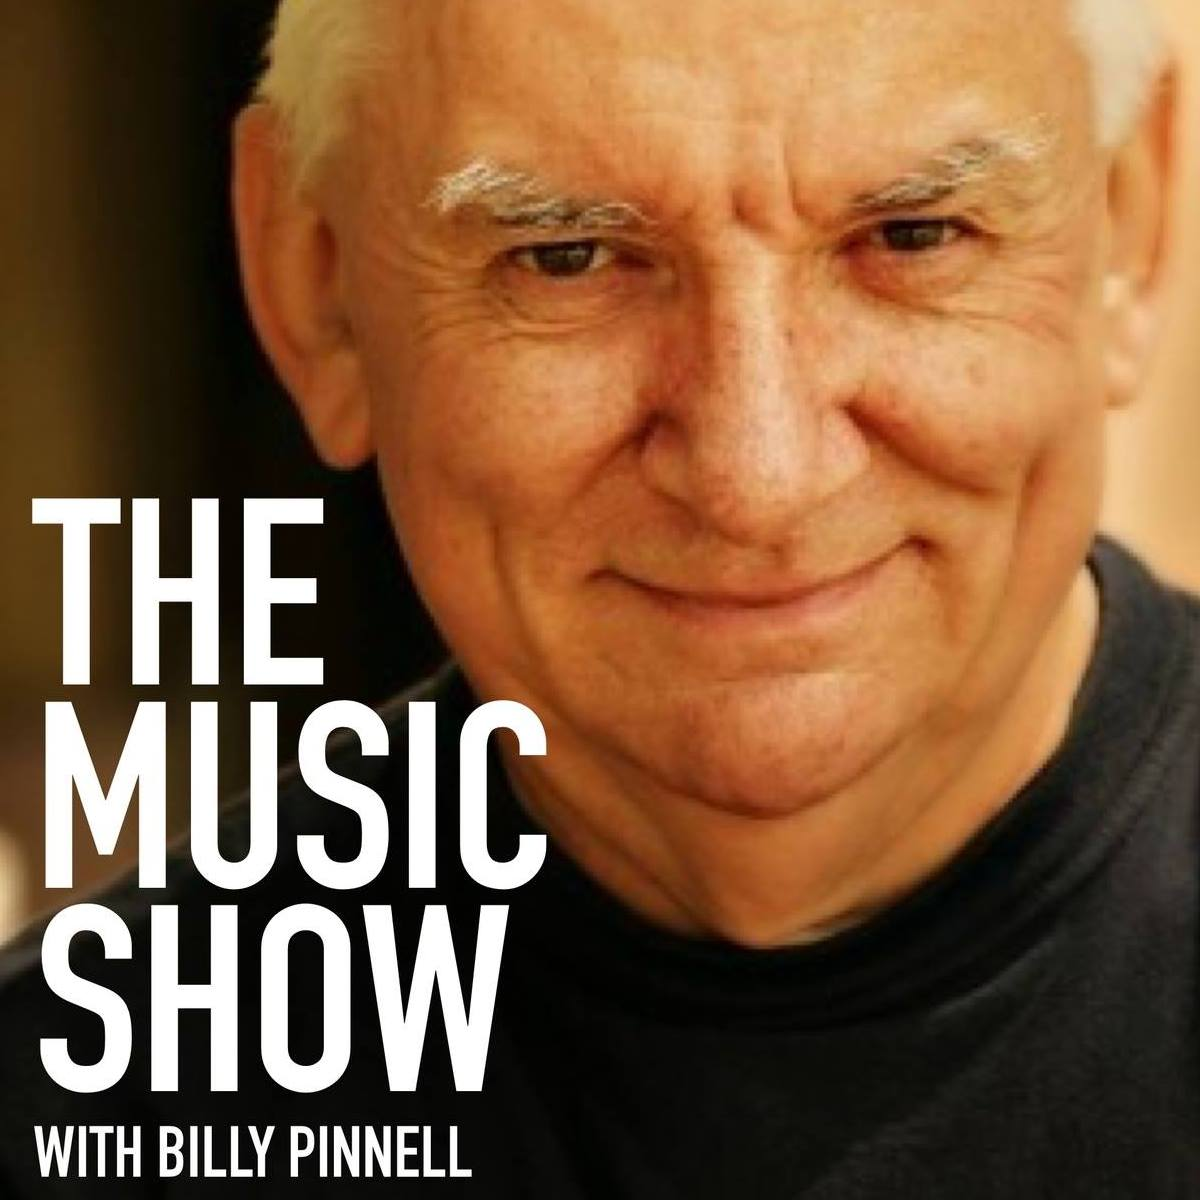 Billy-Pinnell-Music-Show.jpg